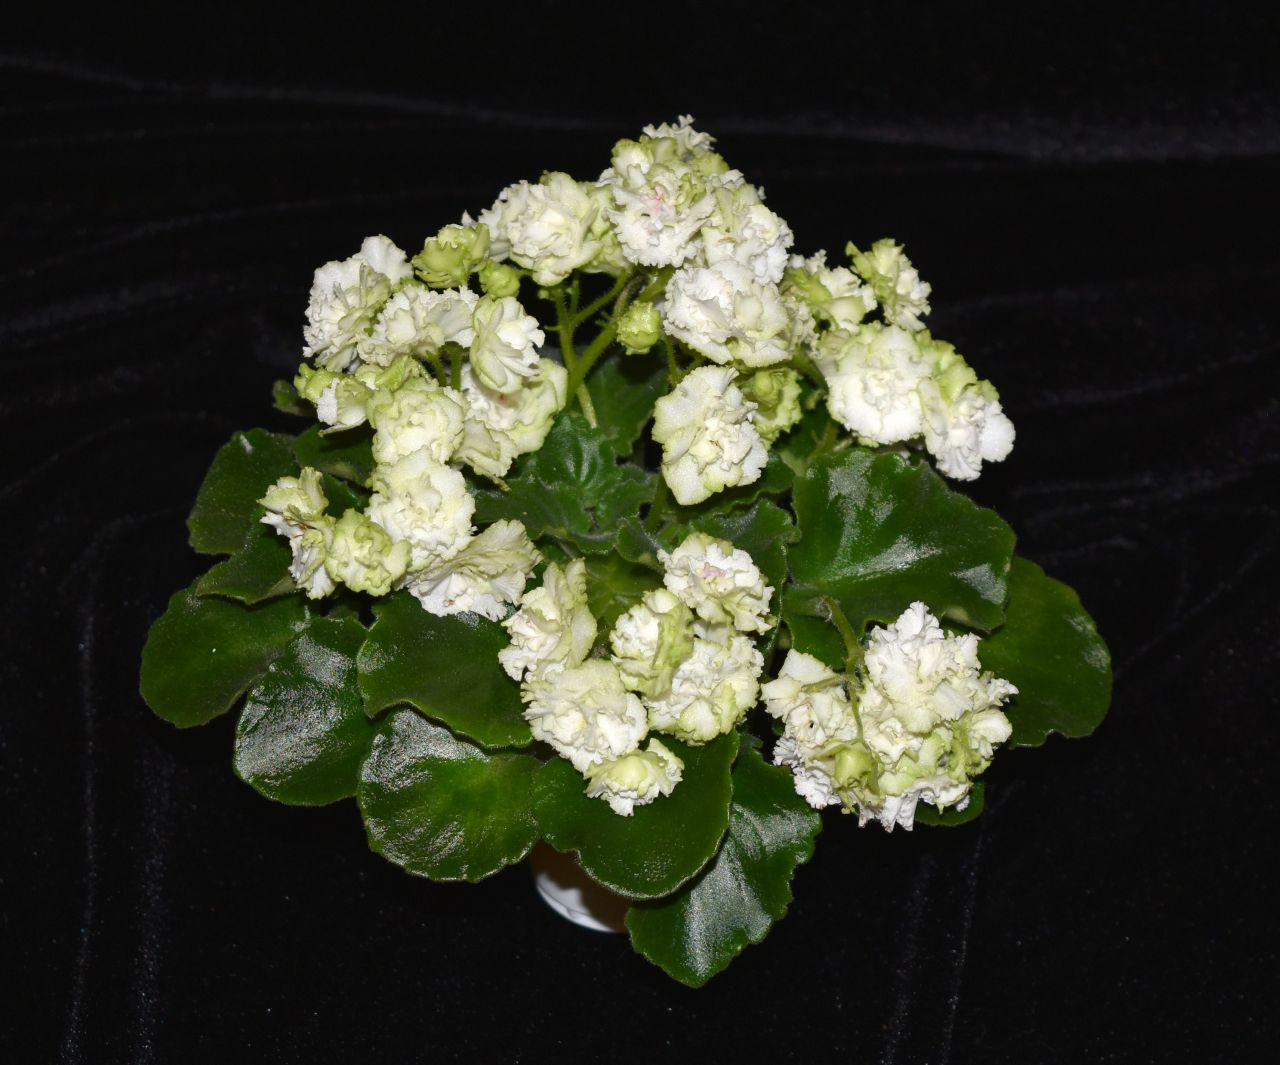 "2017 Convention<br>Old World African Gesneriads in Flower <br>Class 22A – <i>Saintpaulia</i> hybrids or cultivars classified as semi-miniatures (max of 8"" diameter)<br>BEST SAINTPAULIA HYBRID"